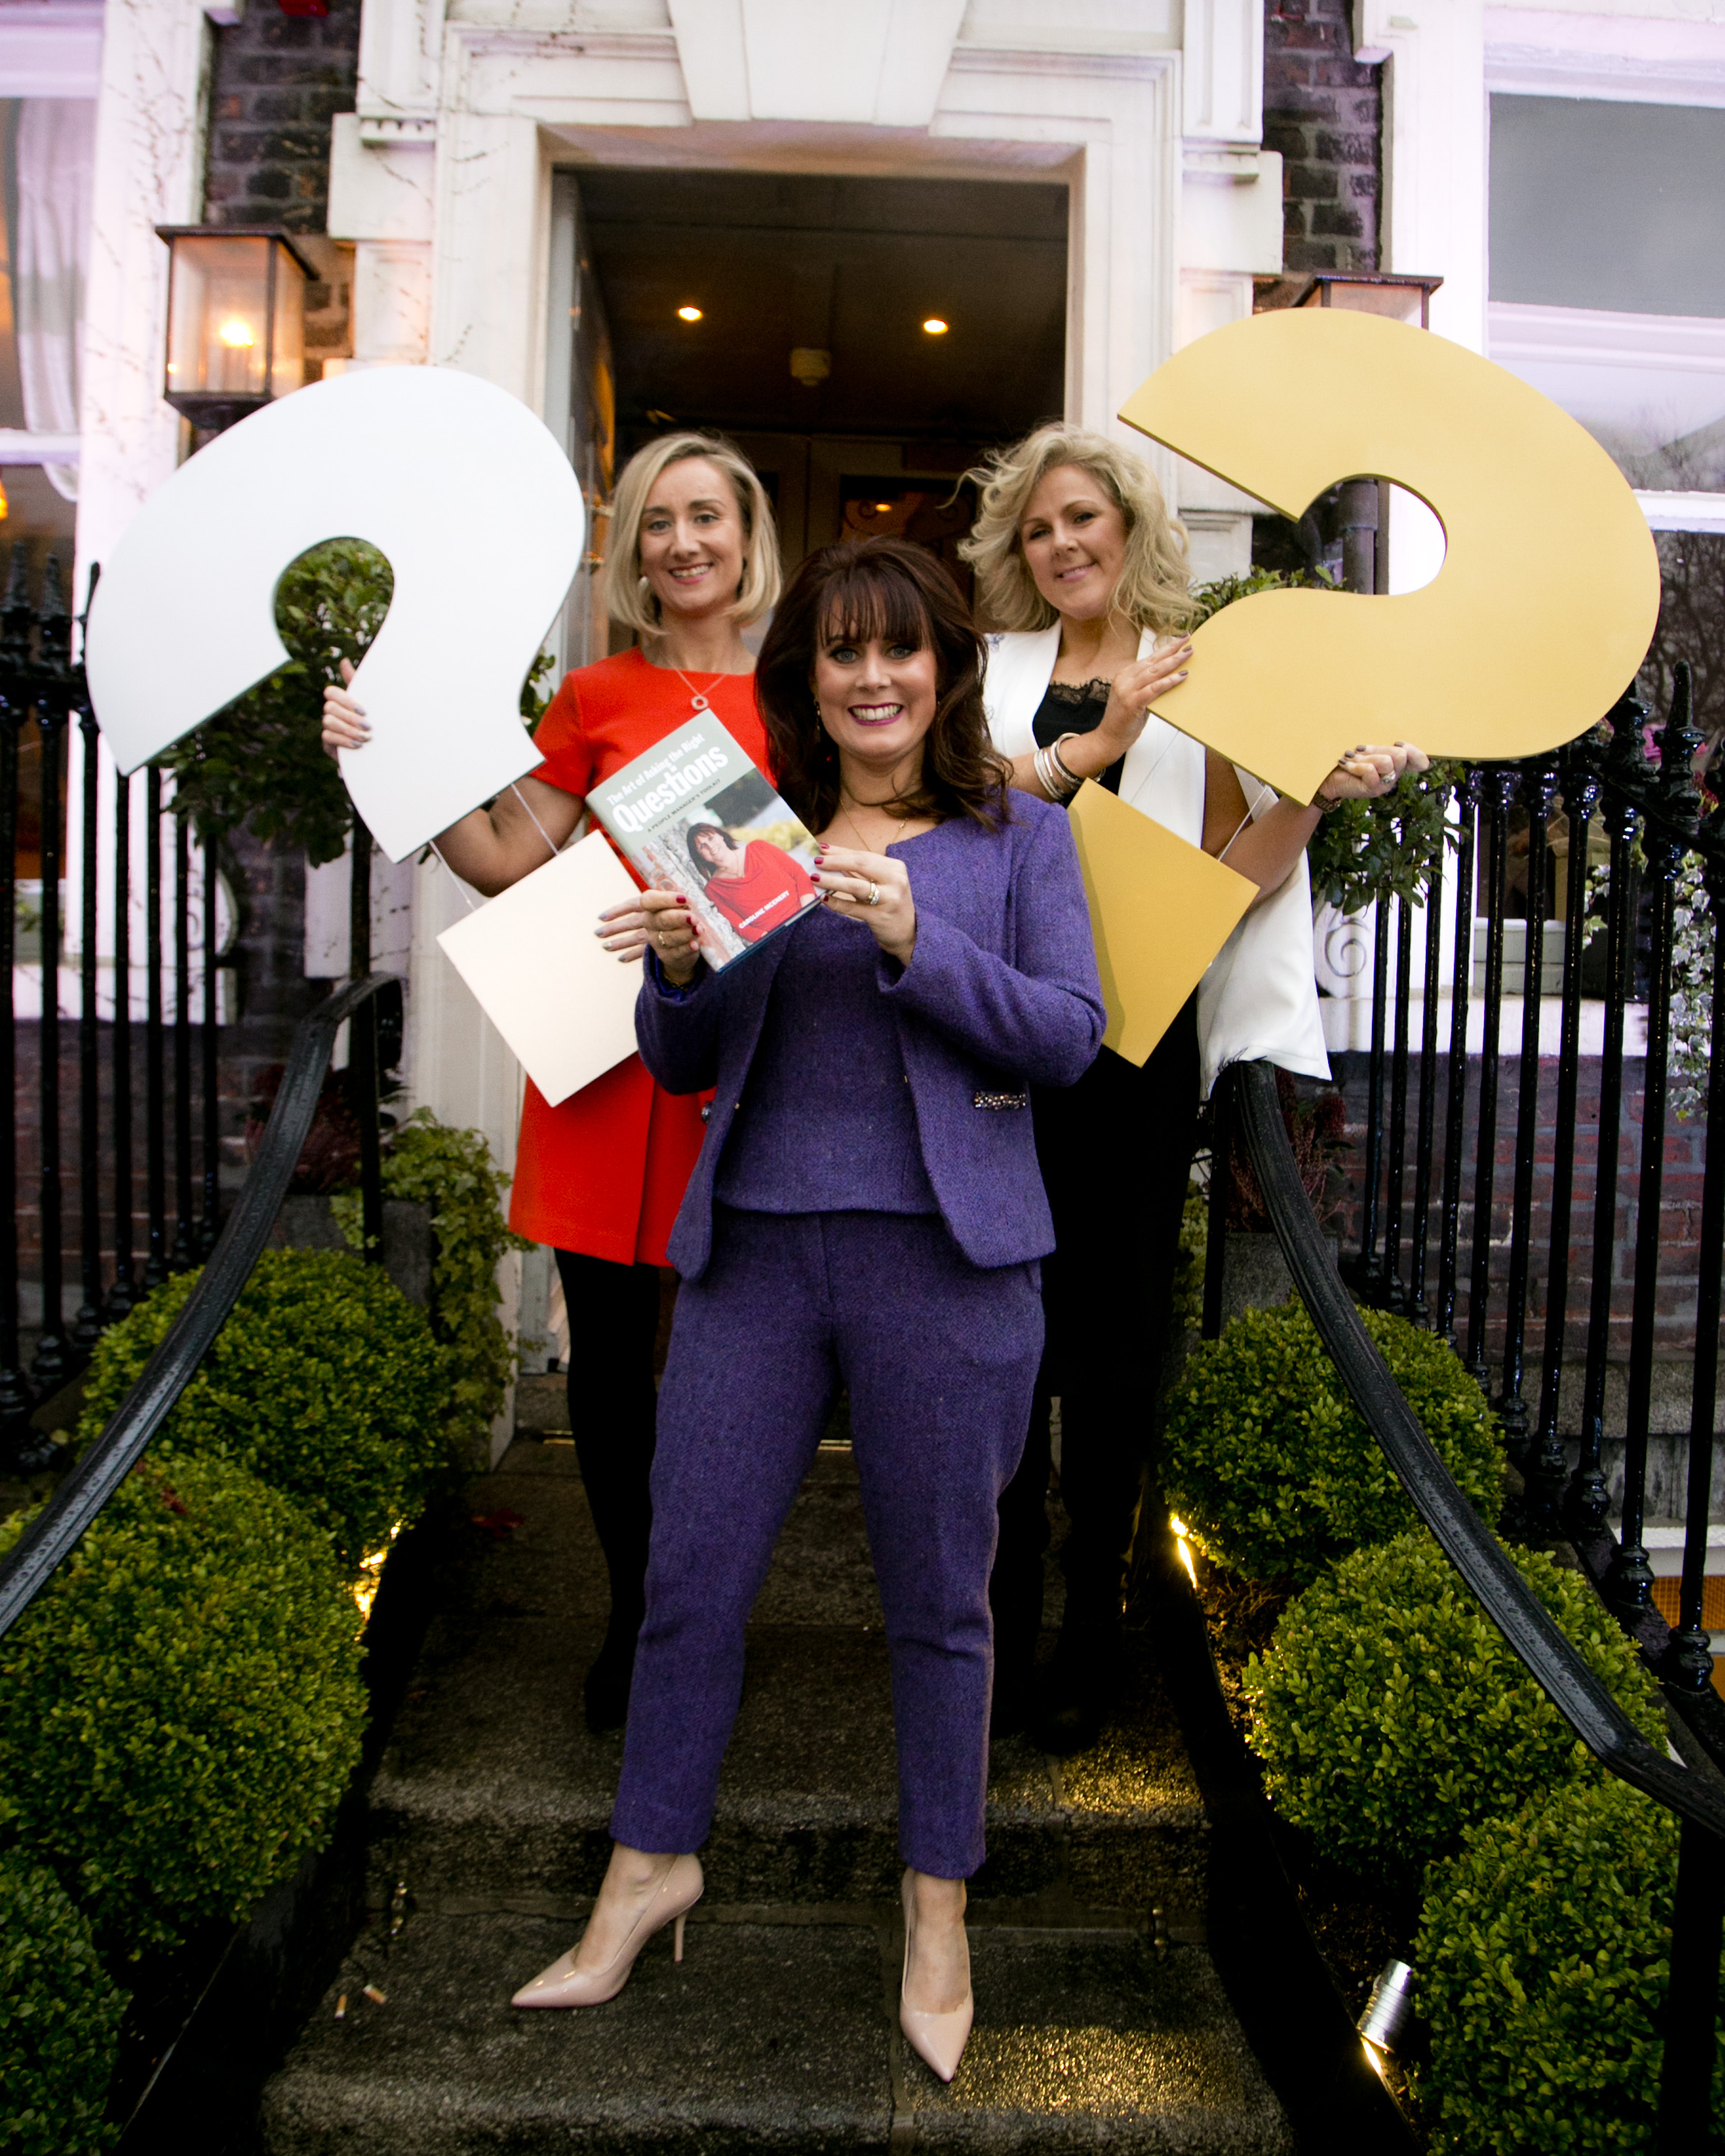 Caroline McEnery with The HR Suite team, Jo O'Dwyer and Mary Stapleton at the Dublin launch of THE ART OF ASKING THE RIGHT QUESTIONS